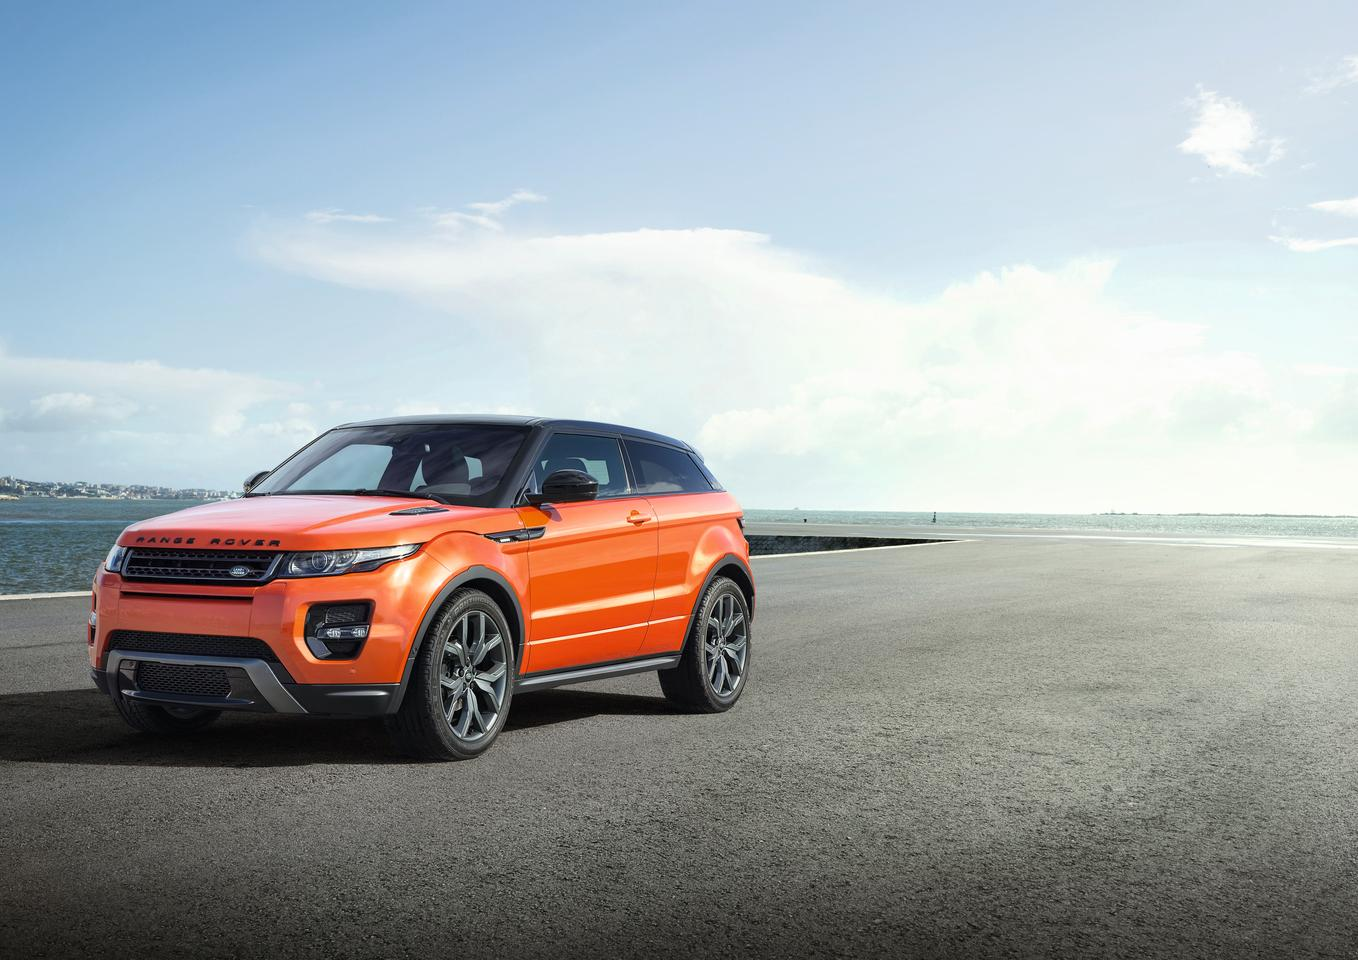 The Range Rover Autobiography and Autobiography Dynamic Evoque will debut at the Geneva Motor Show